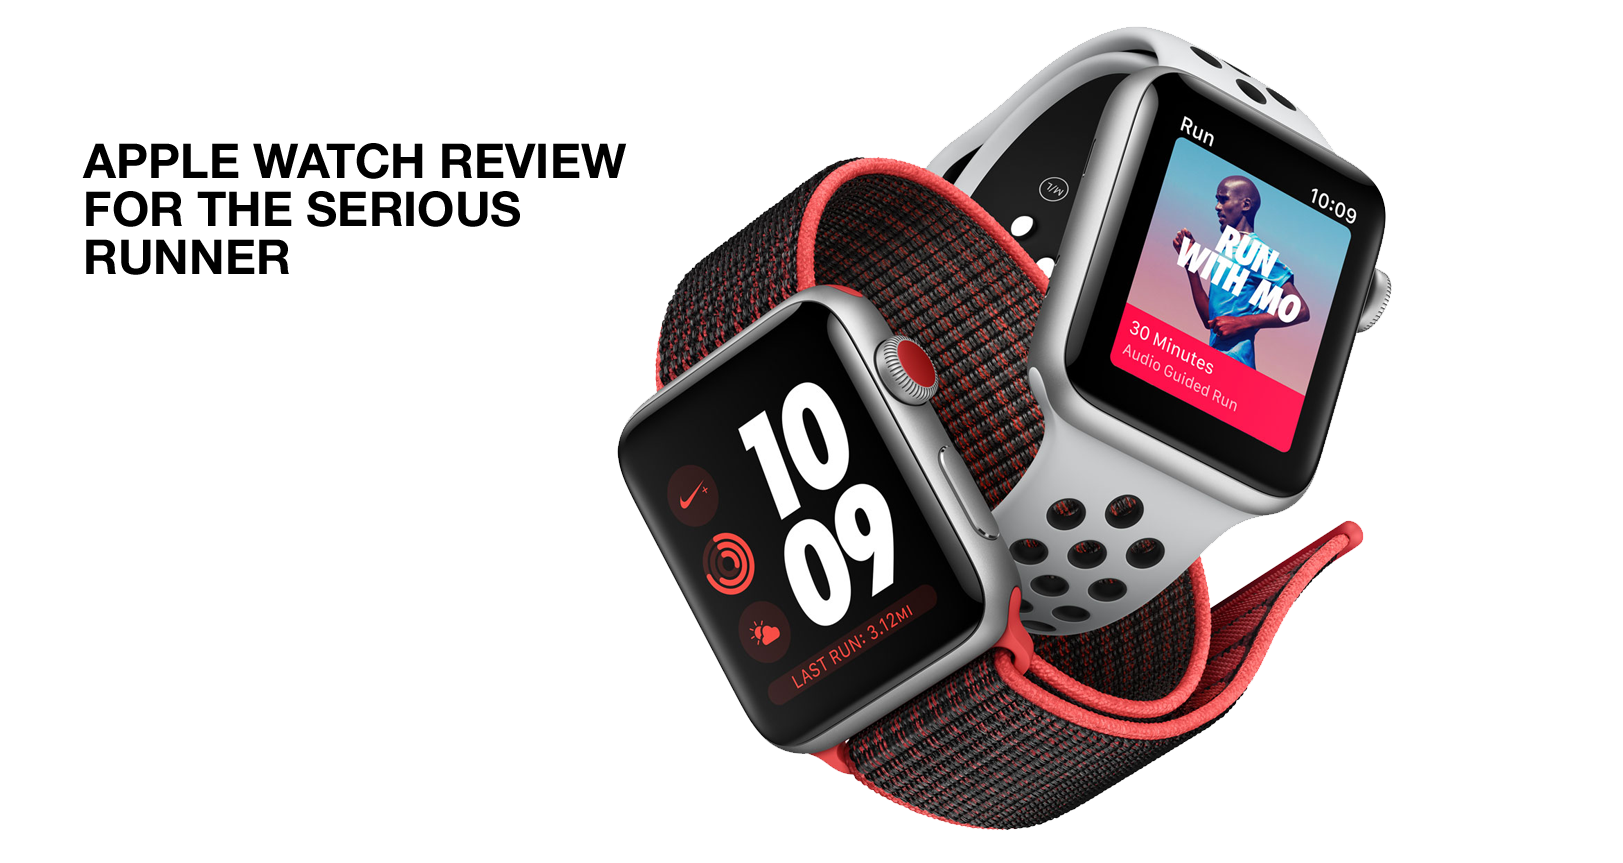 Apple Watch Series 3 for the serious runner » Believe in the Run